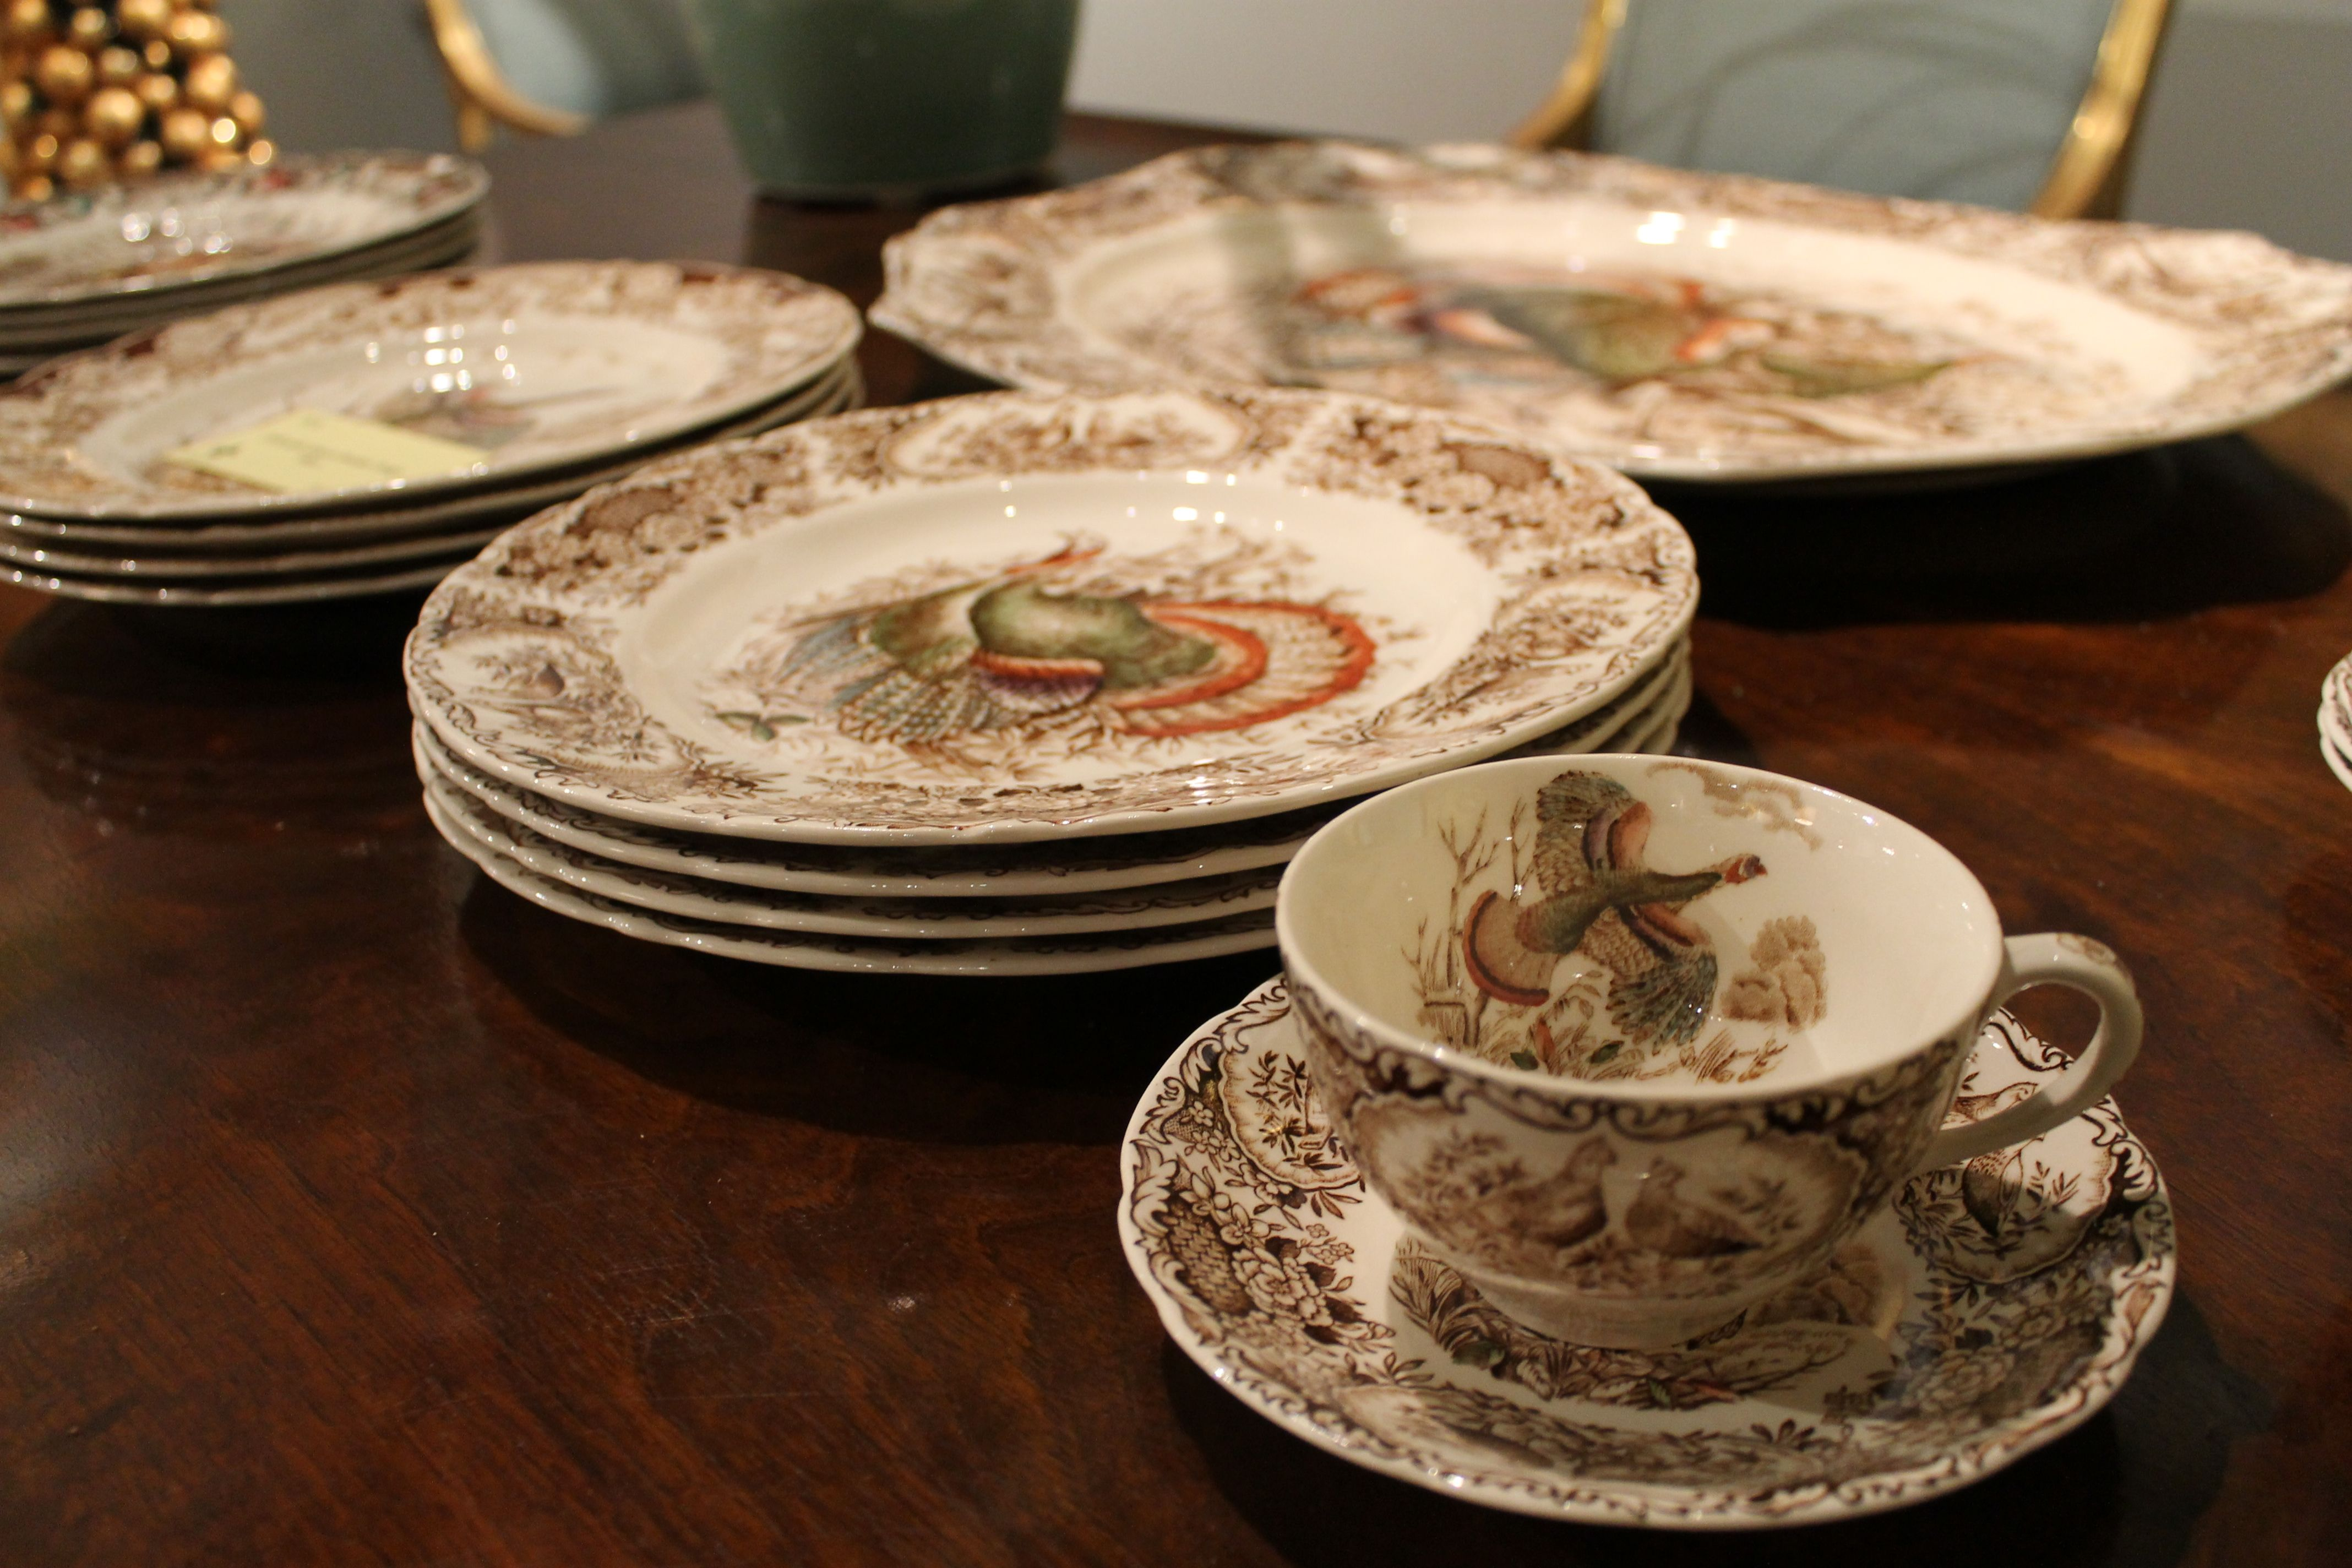 Everything you need for the perfect #Thanksgivingfeast! #denver #design @shopsat9thavenue